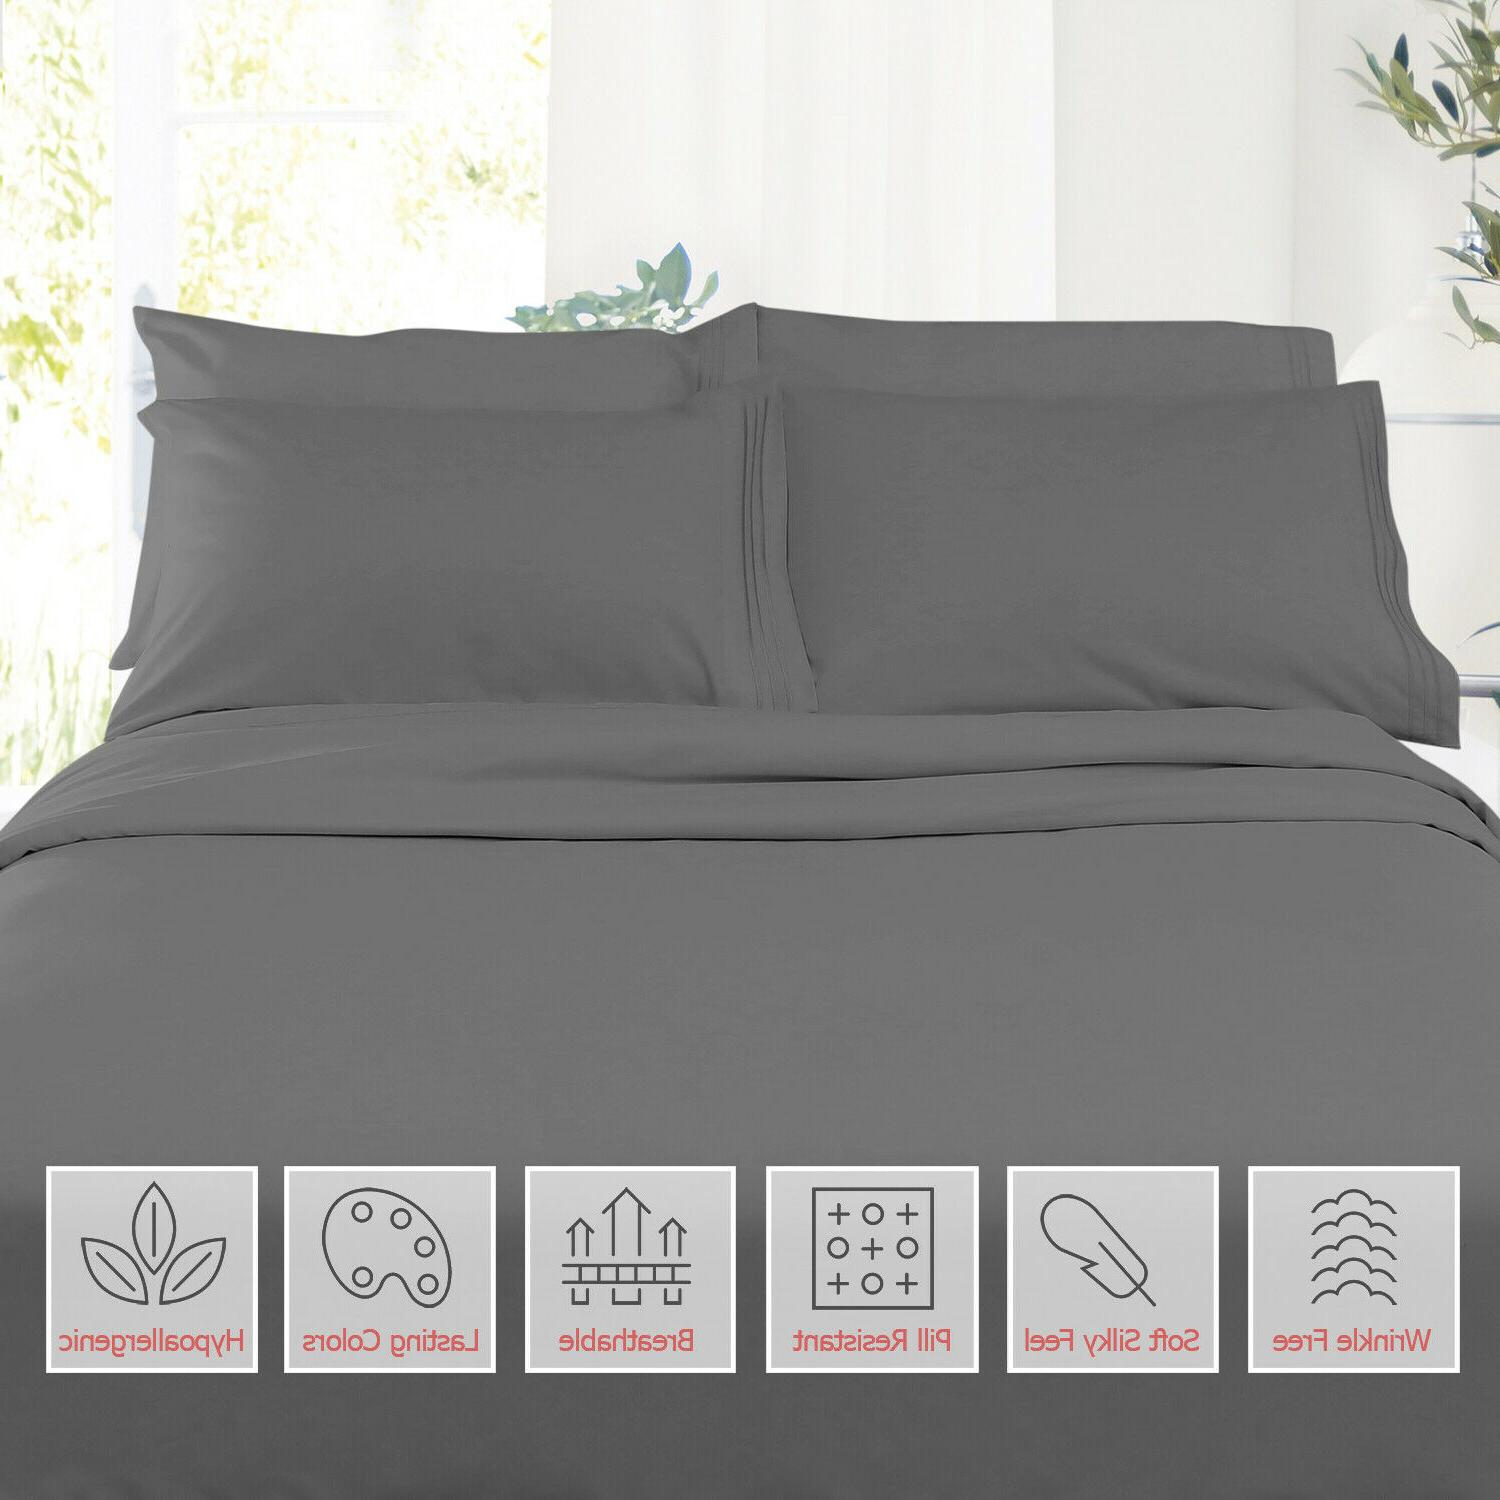 new double brushed soft microfiber hotel style